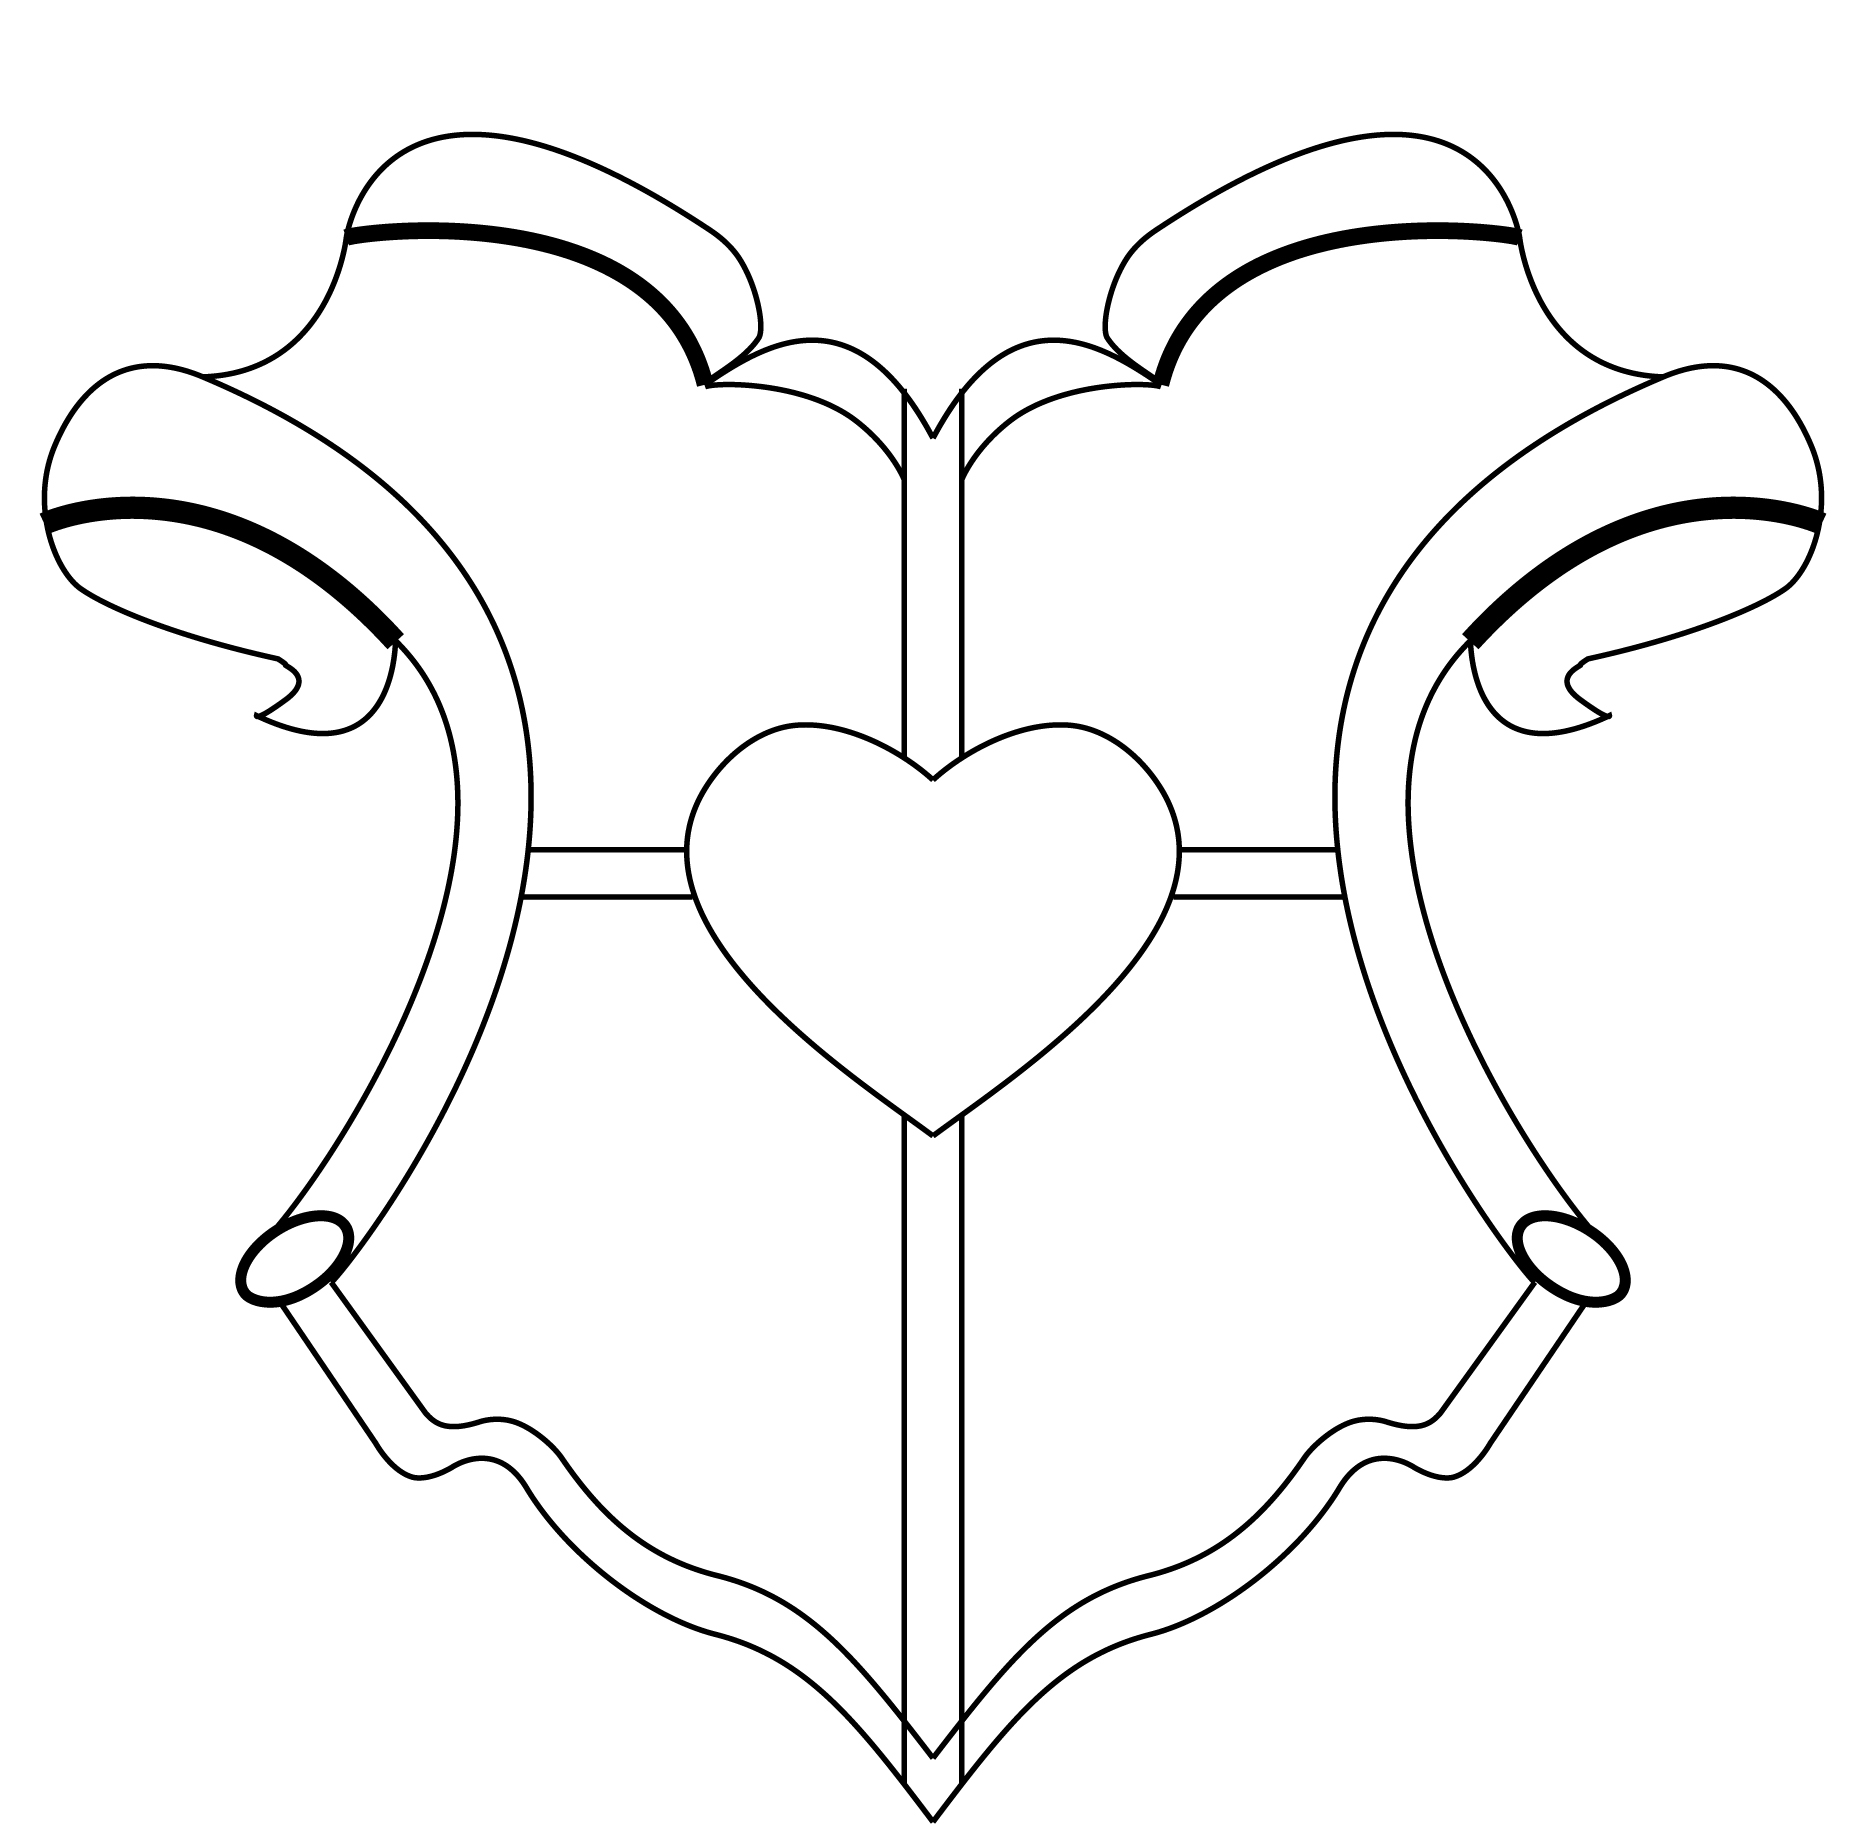 Coat Of Arms Template By Williamcll On Deviantart